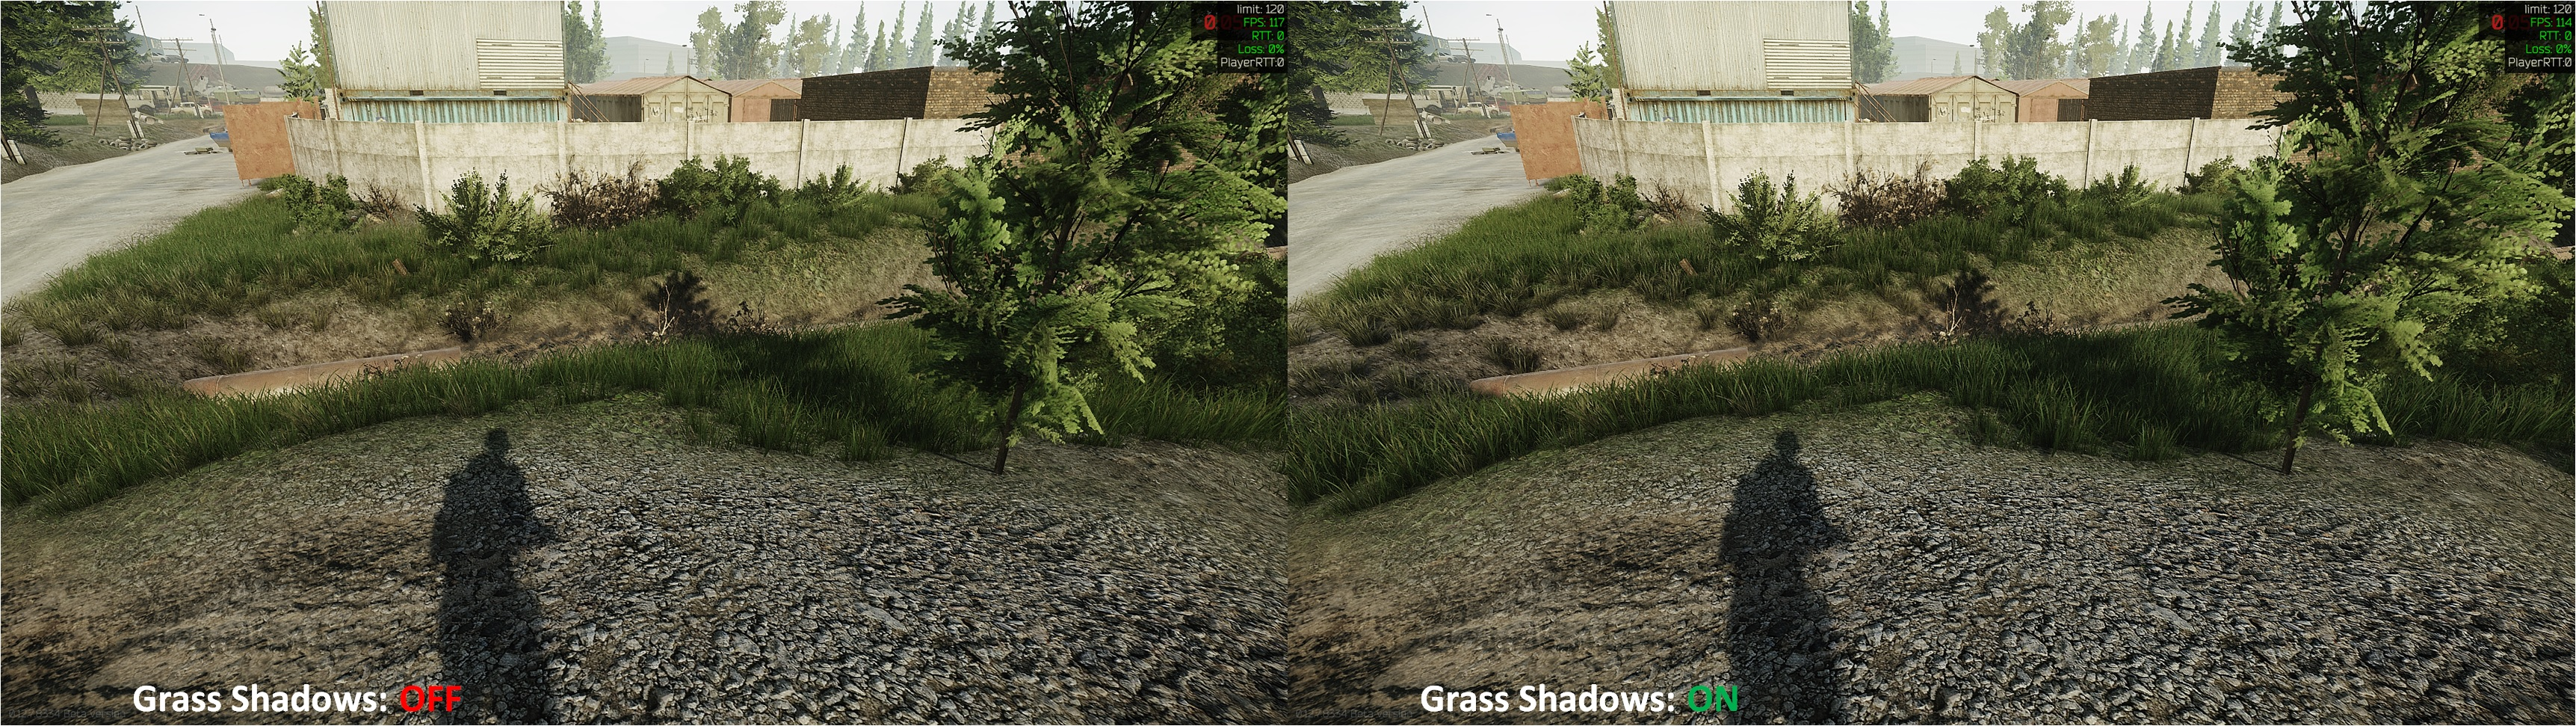 Tarkov Grass Shadows Comparison